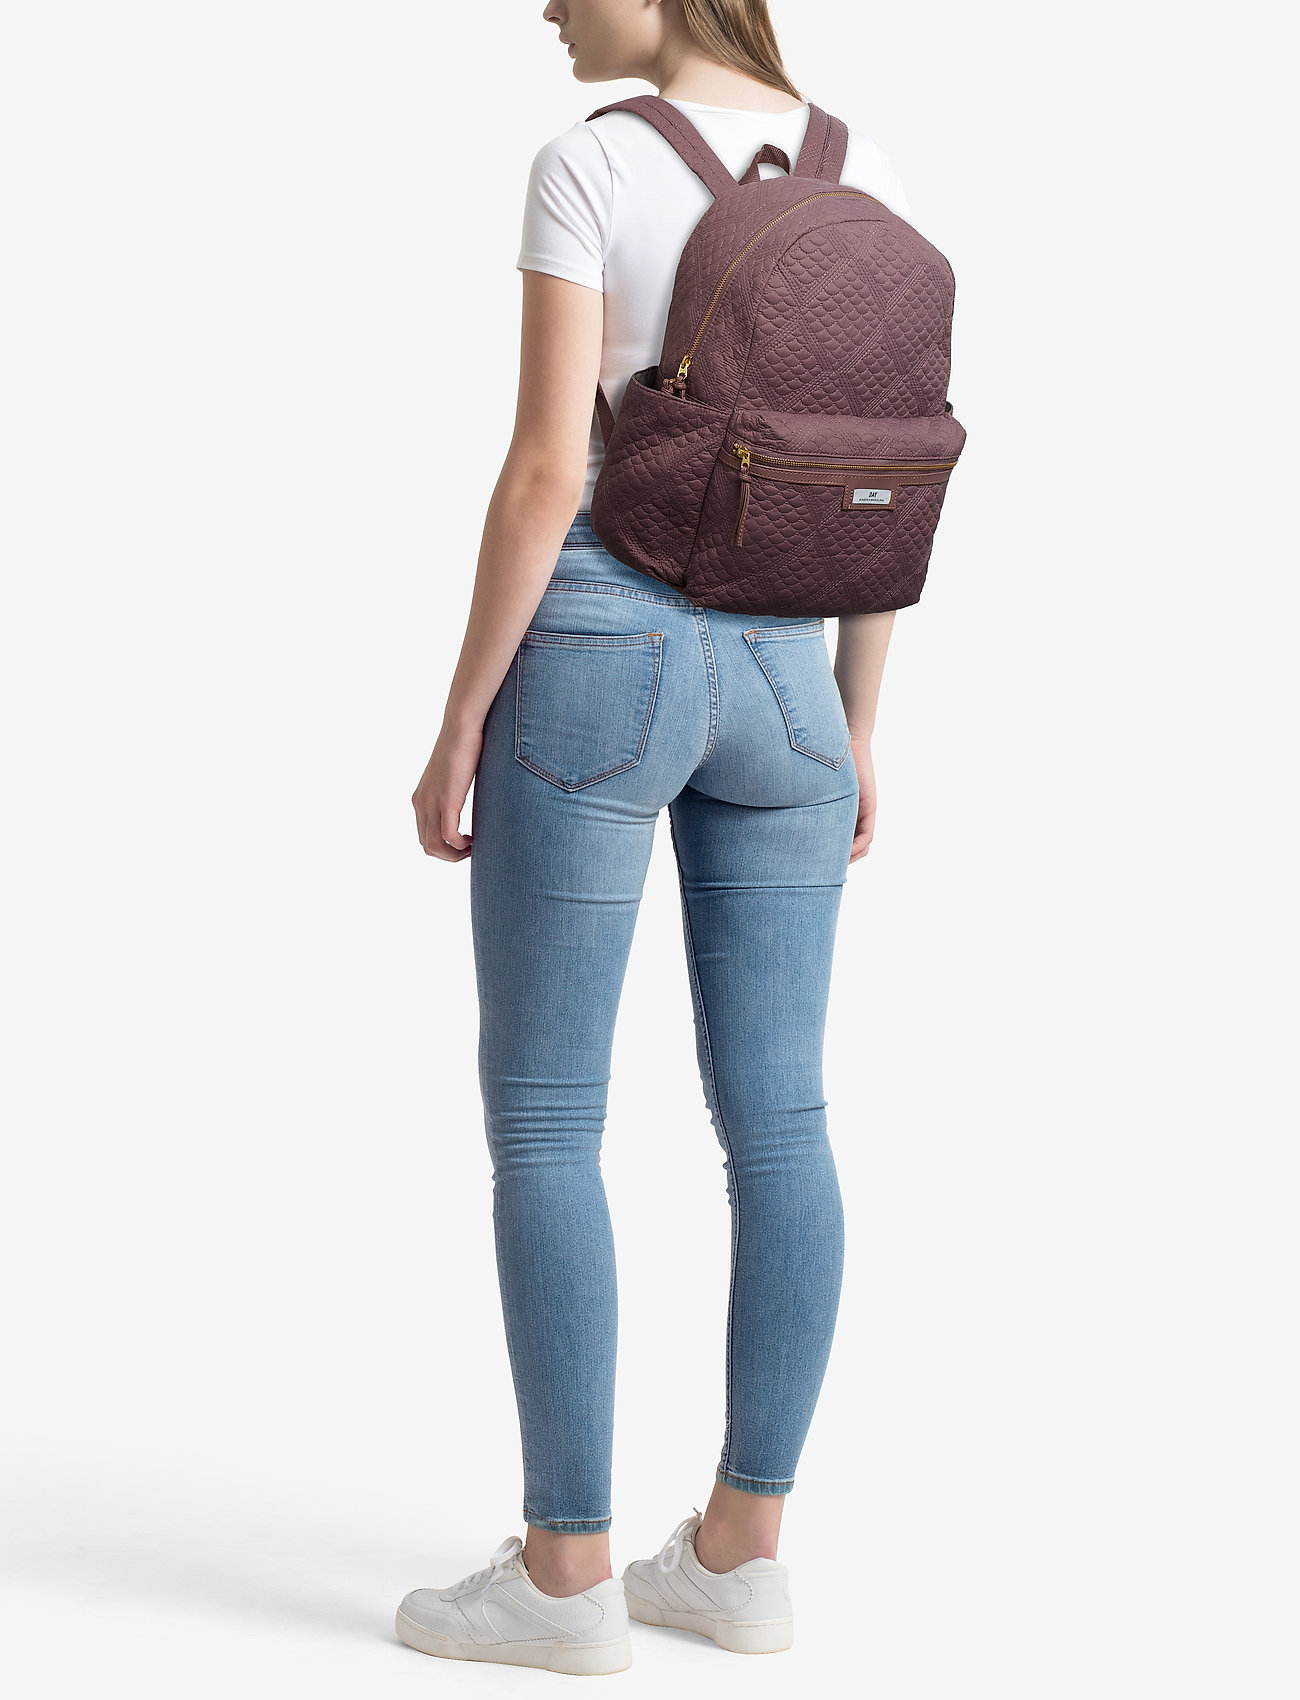 DAY et - Day Gweneth Q Topaz BP B - backpacks - rose taupe